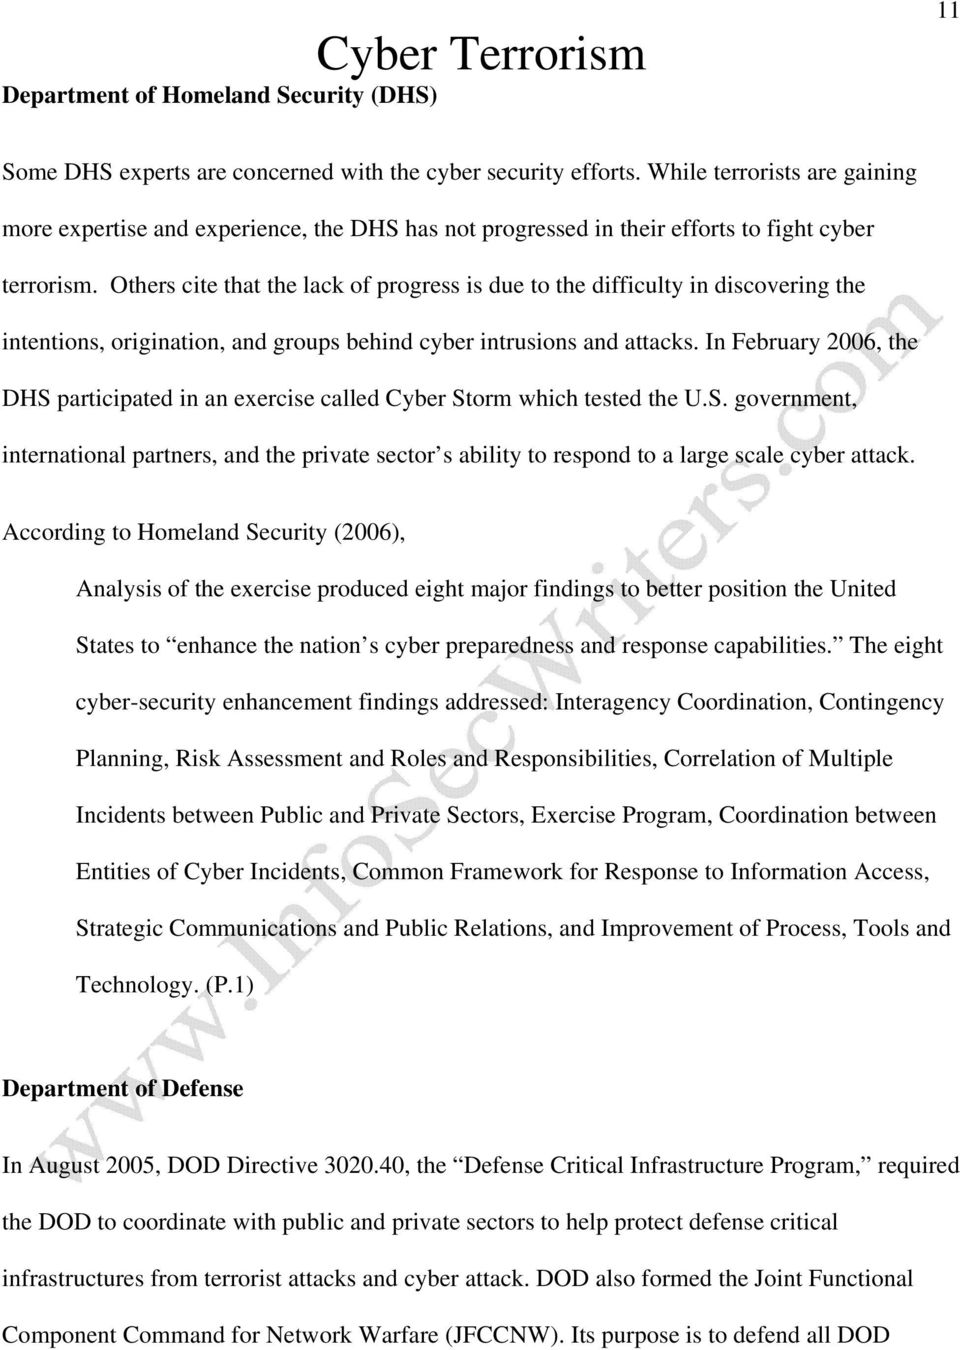 017 Cyber Terrorism Essay Research Paper Page 11 Imposing Full